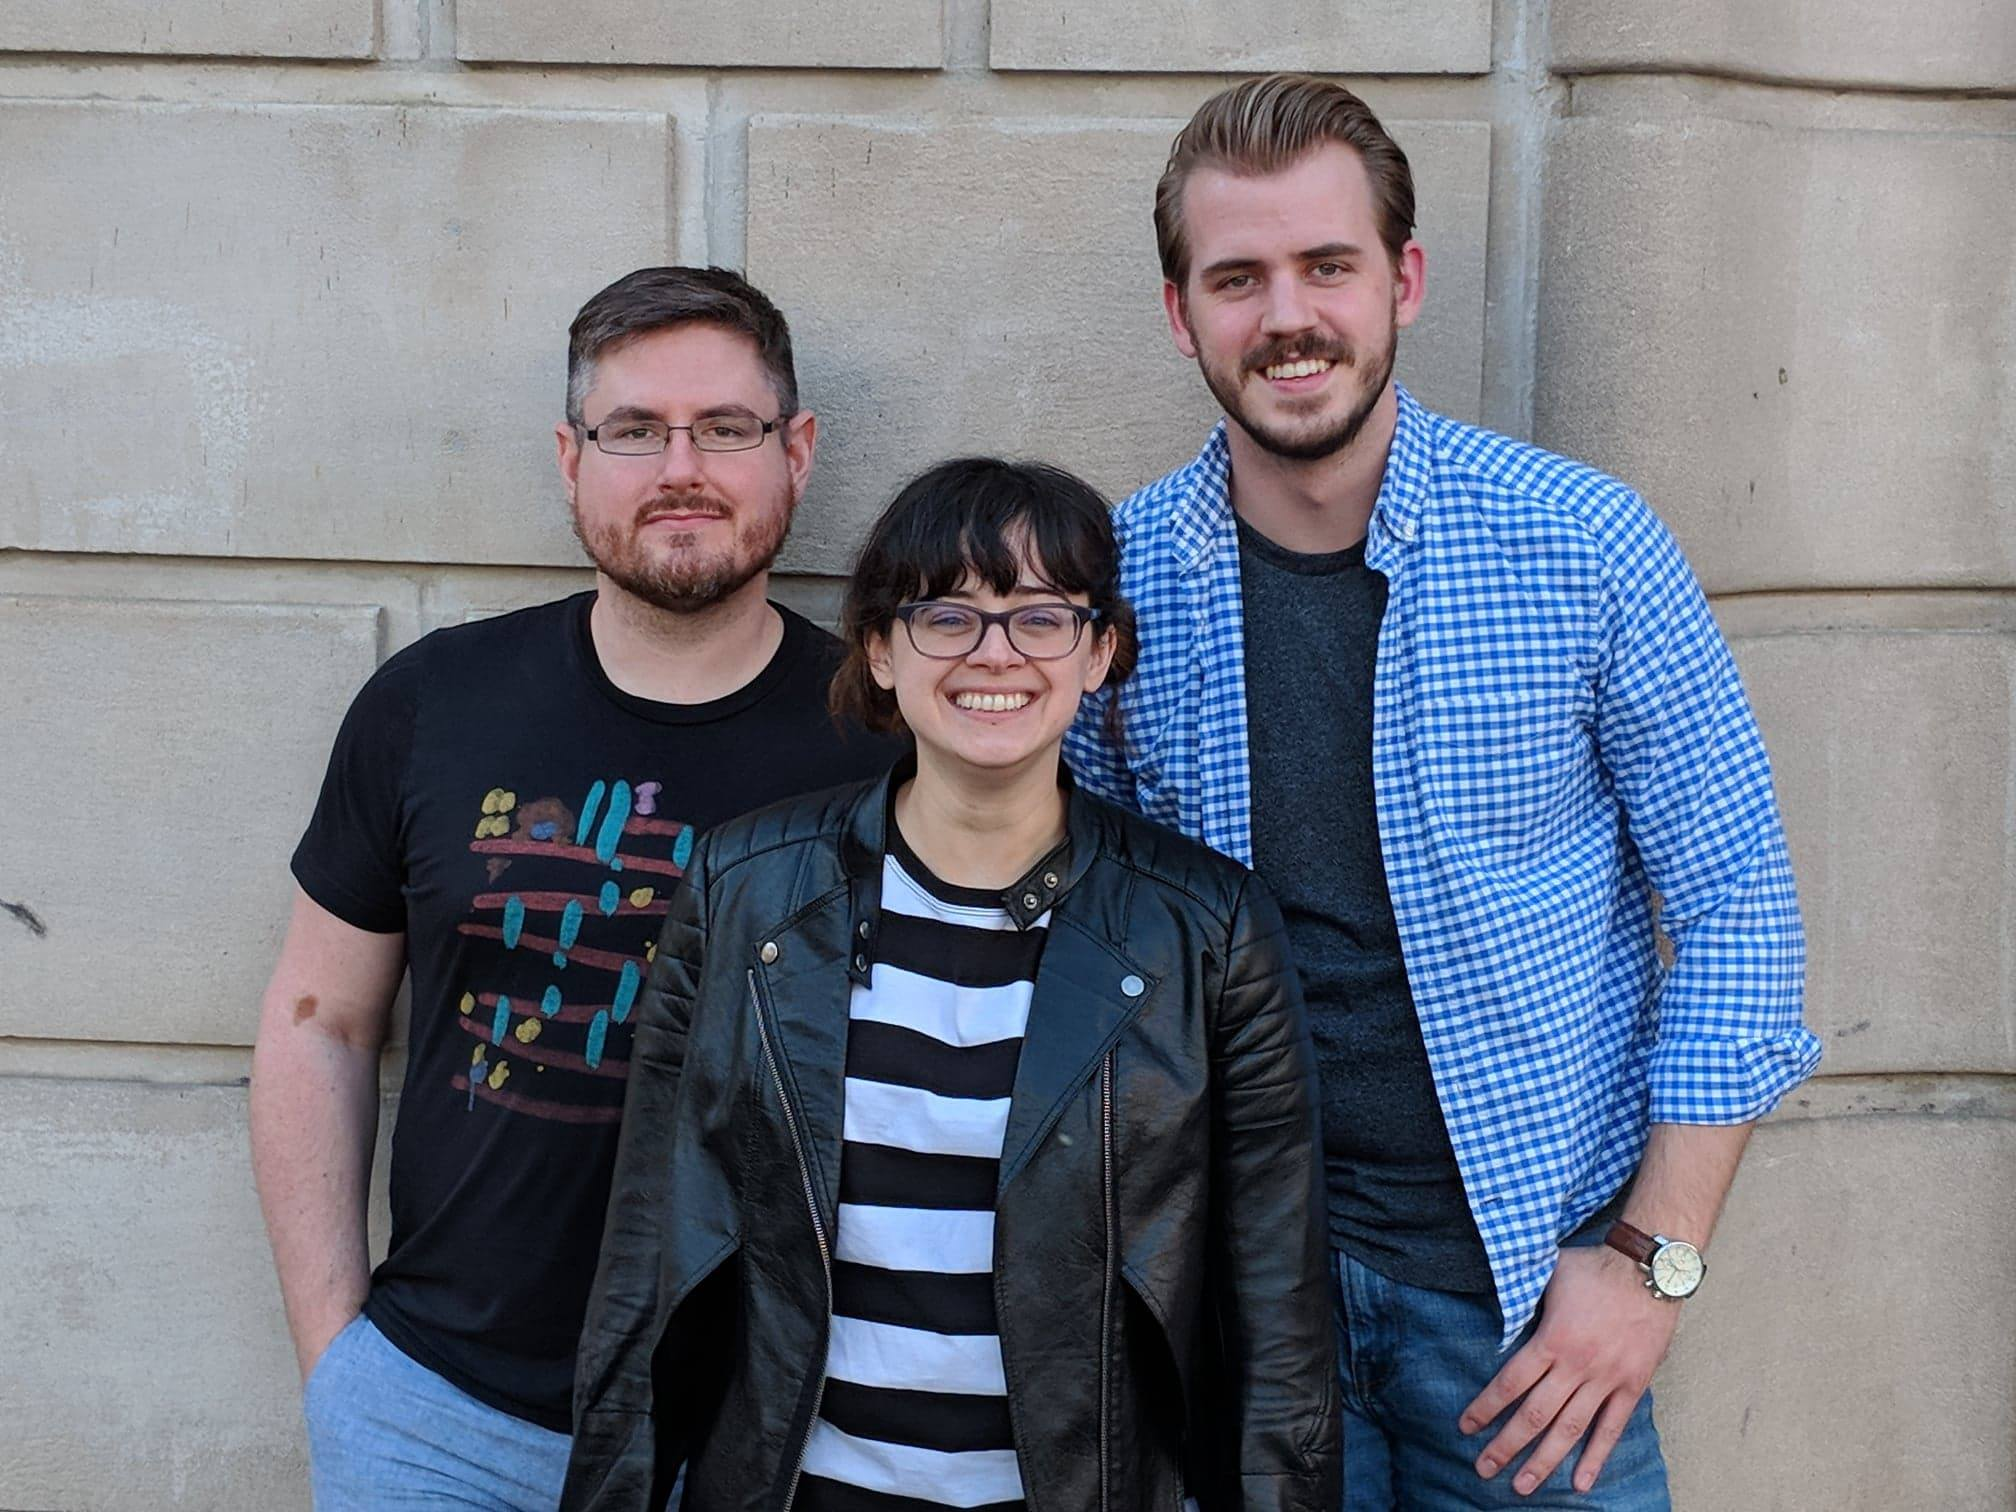 Madison Comedy Week's organizers are, from left to right, Peter Rambo, Cynthia Marie, and Jake Snell.